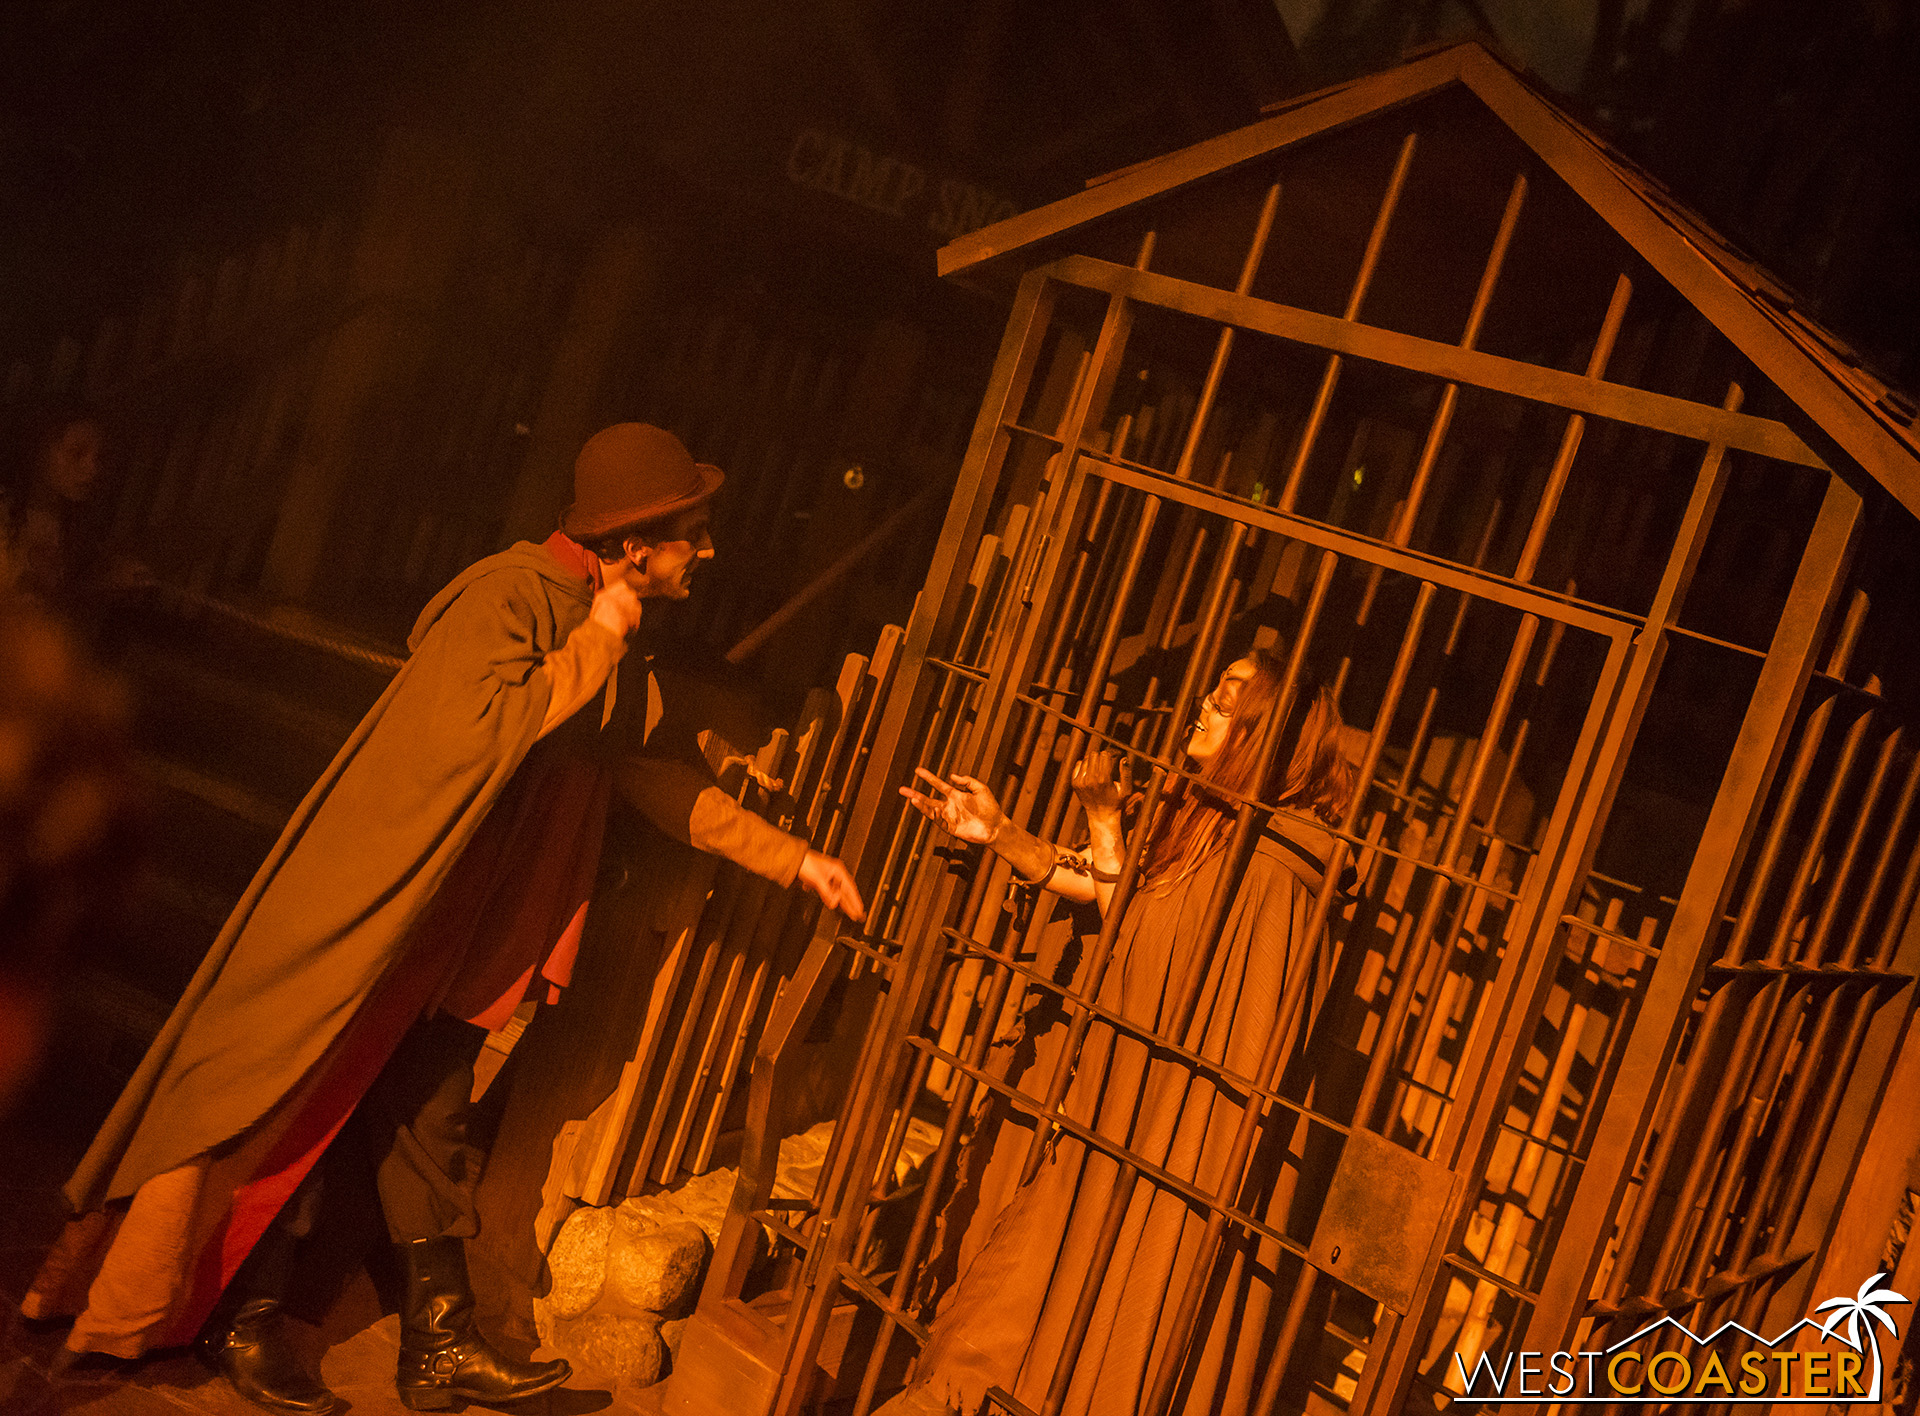 The Maiden is trapped by the Witch Hunter and his associate during one of the Hollow vignettes during the night.